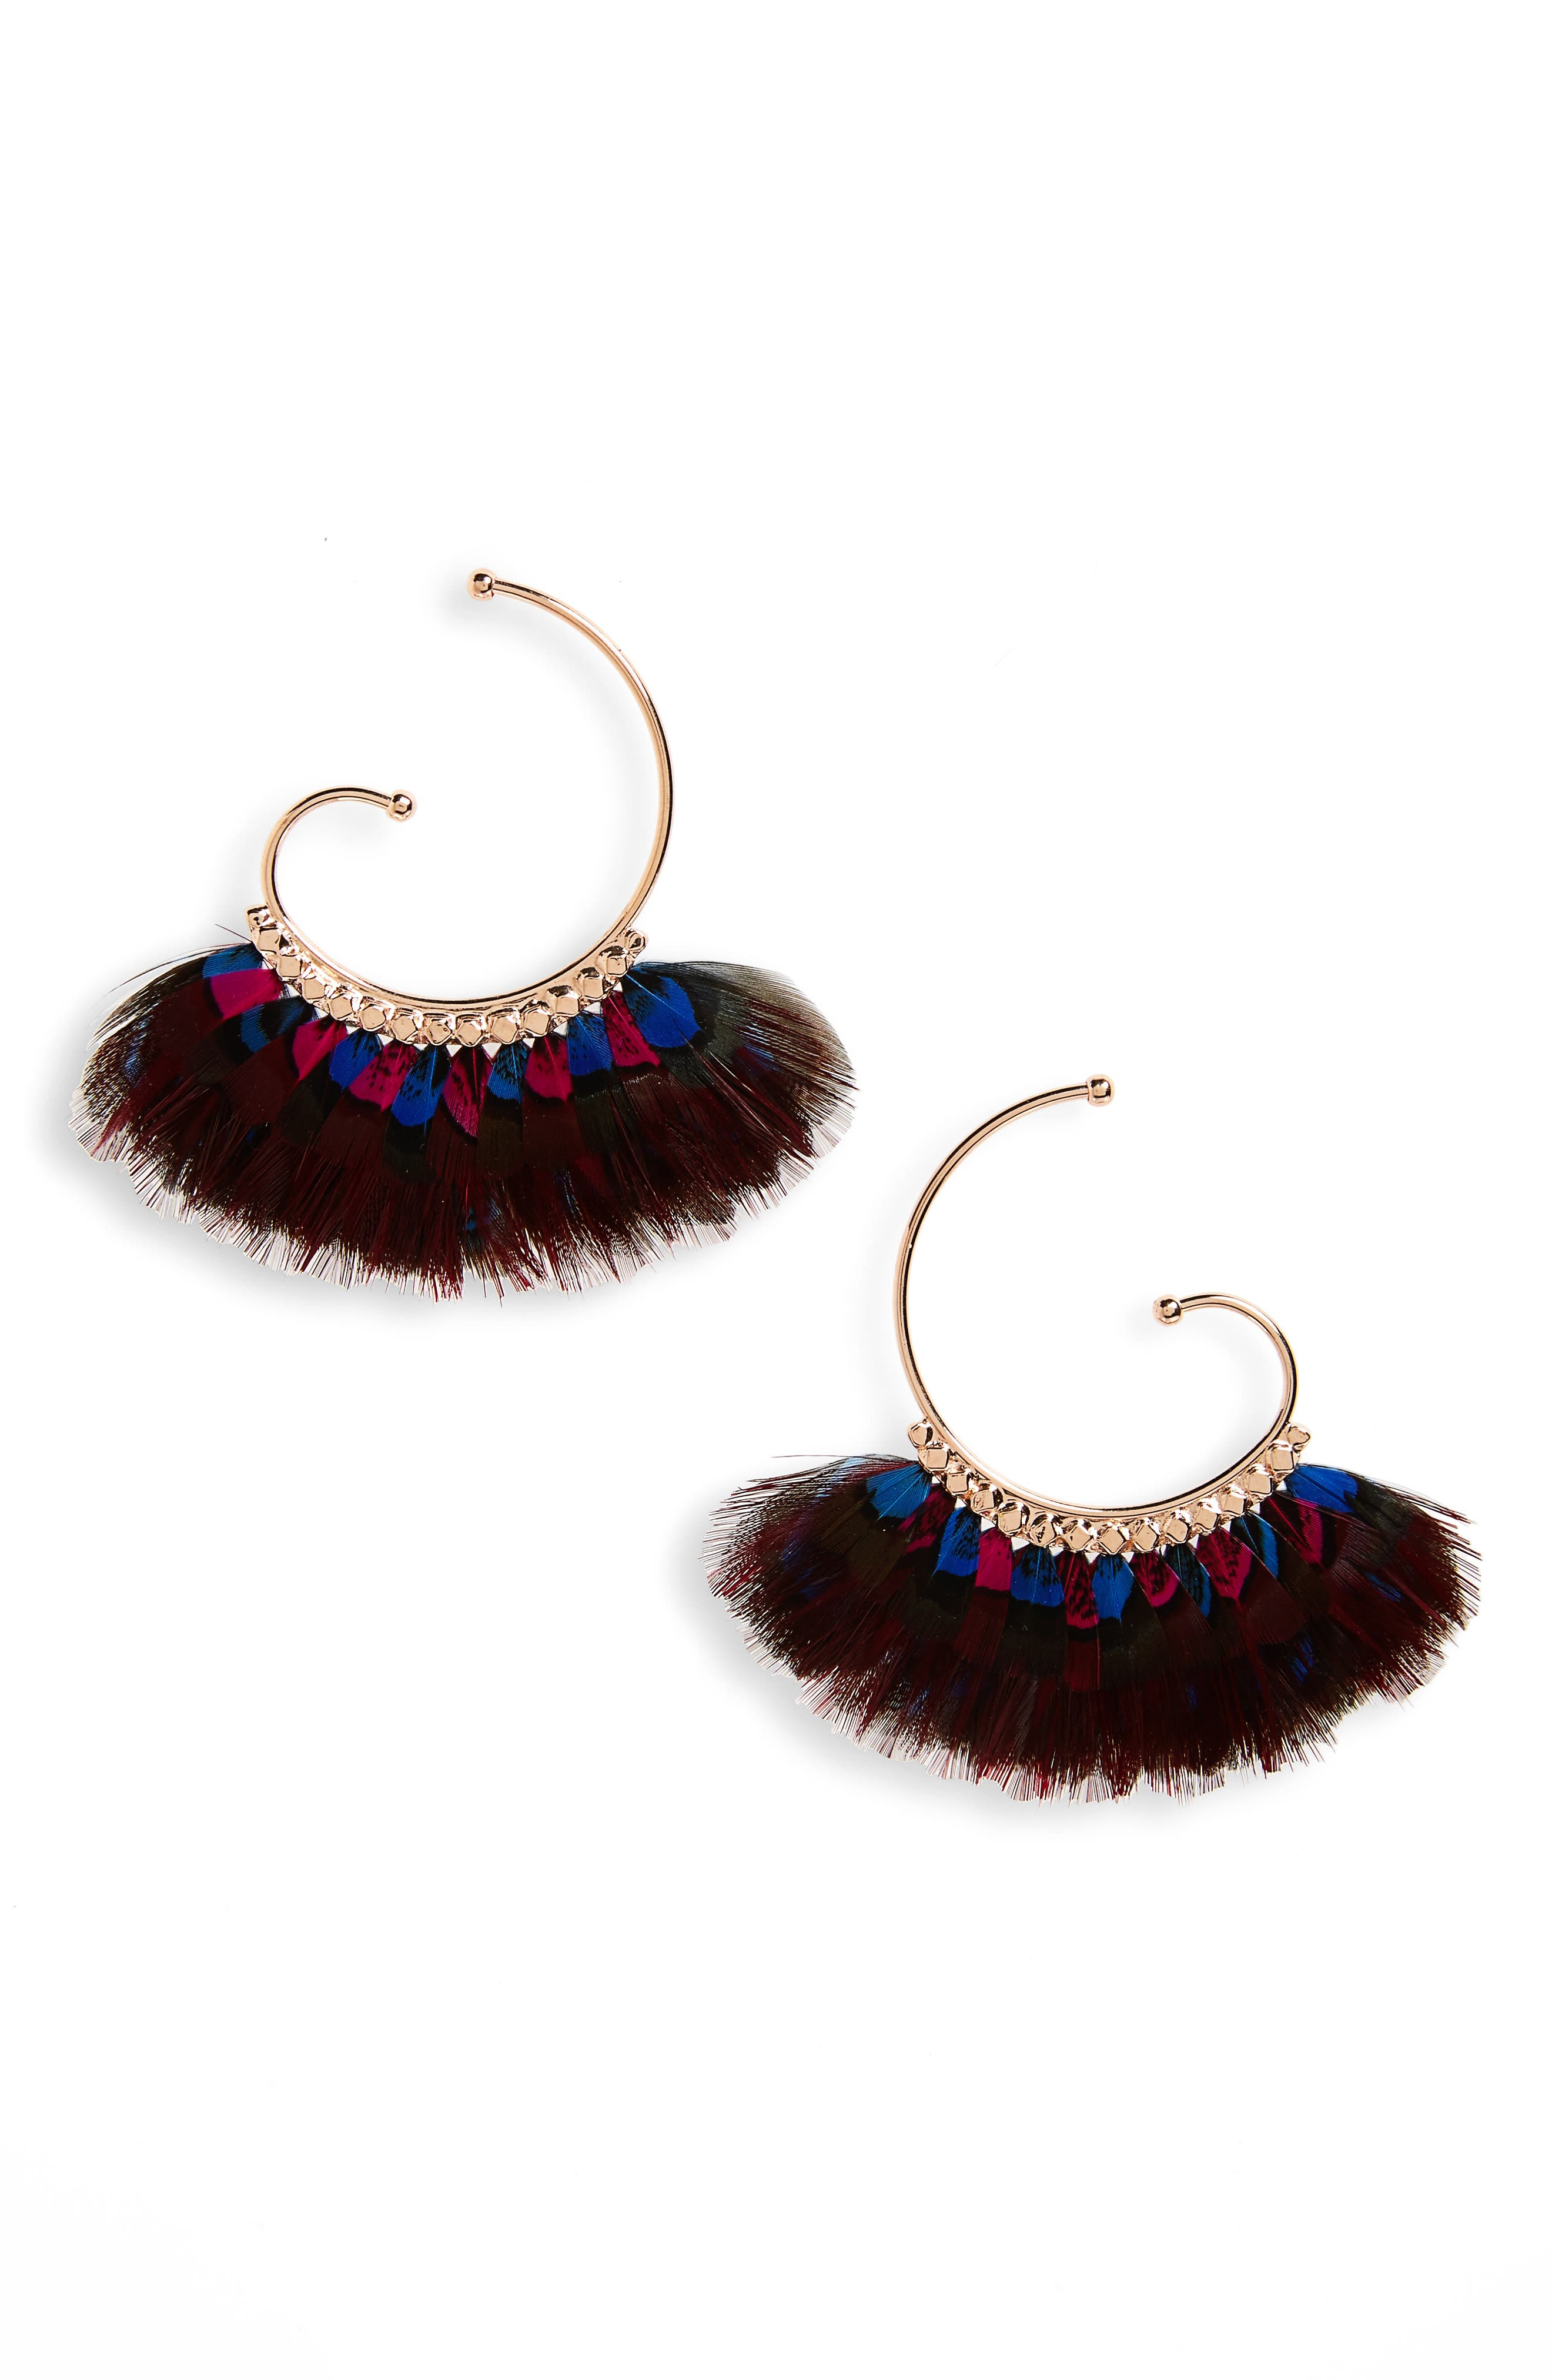 'Buzios' Feather Earrings,                             Main thumbnail 1, color,                             Red/ Blue